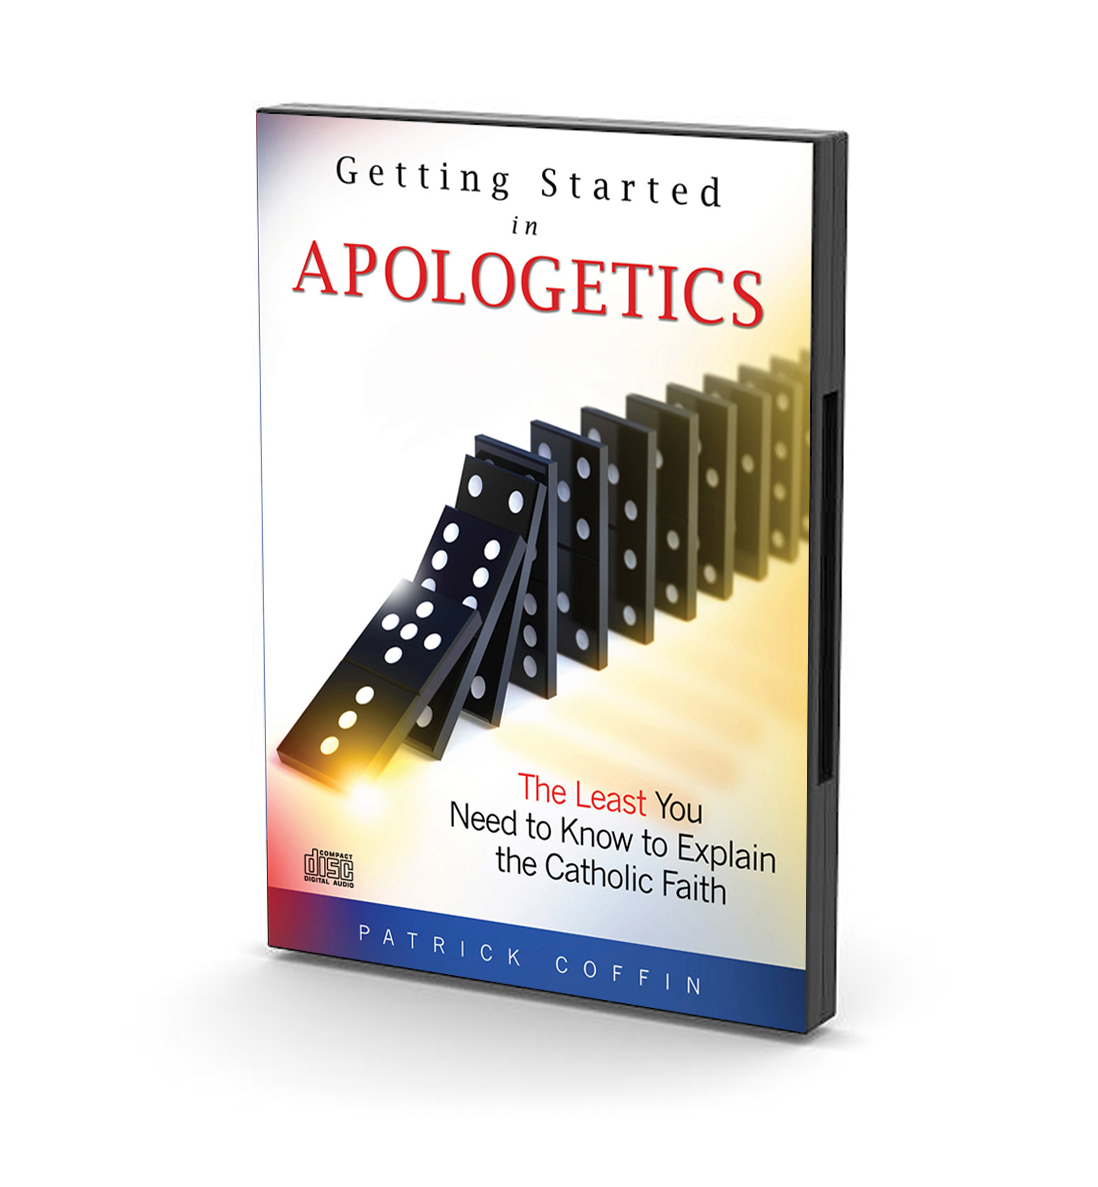 GETTING STARTED IN APOLOGETICS